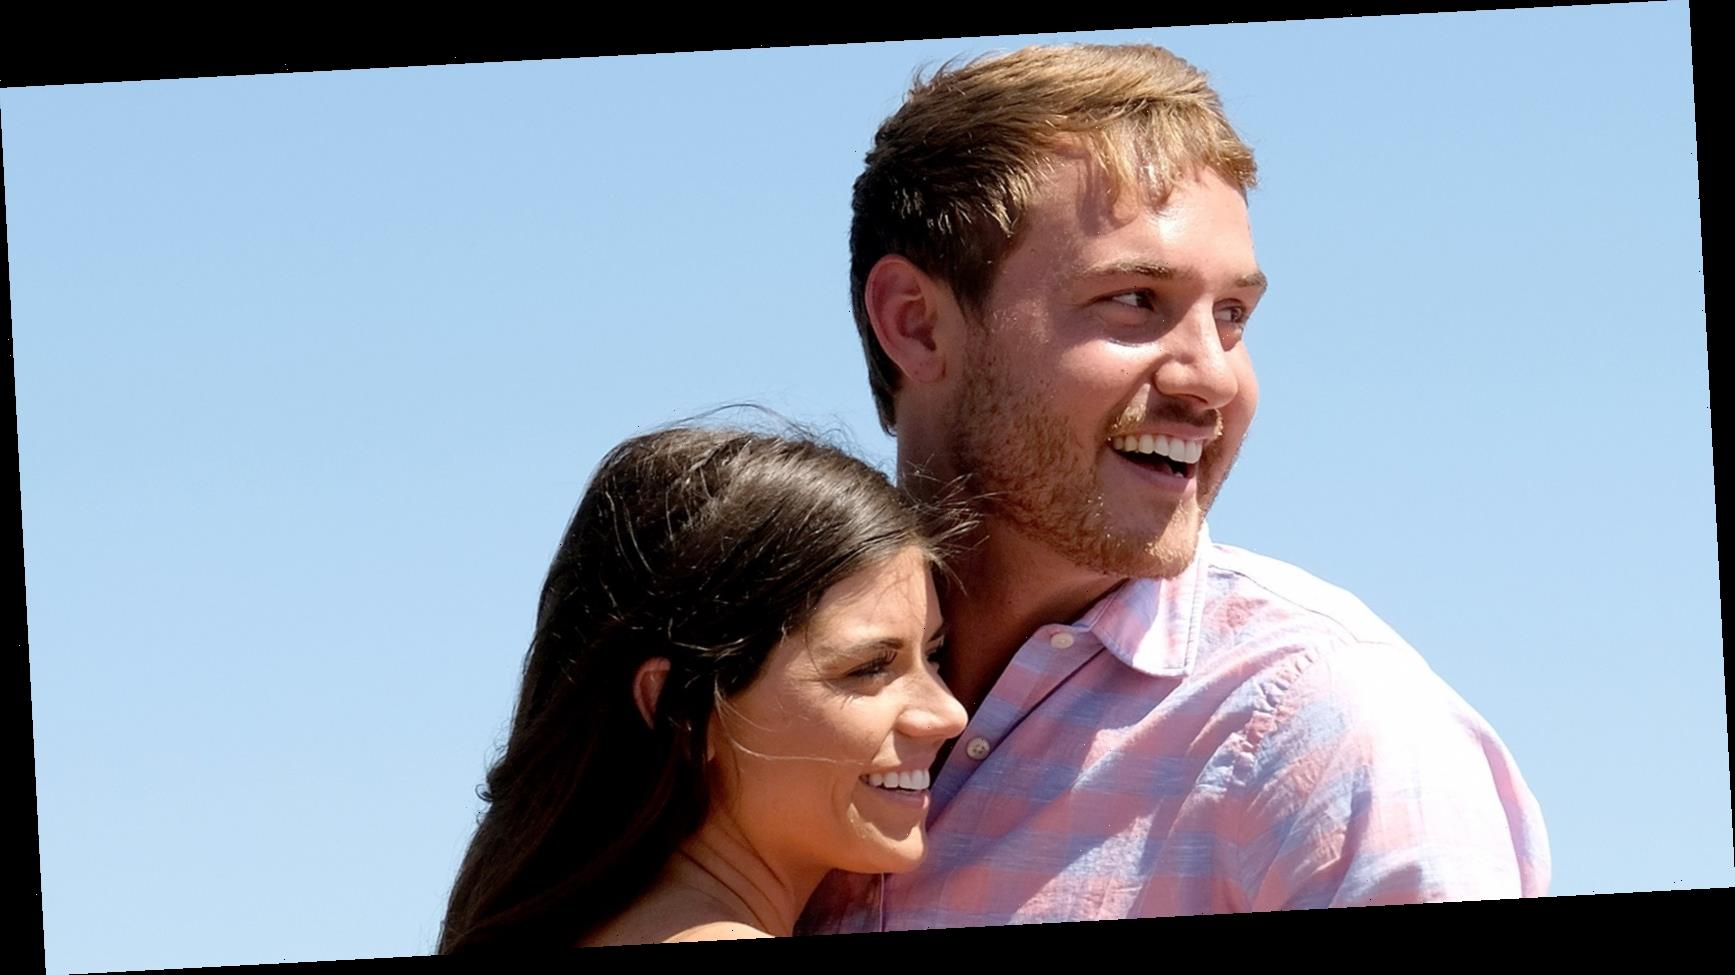 From First Date (With Barb!) to Split: Bachelor Peter and Madison's Timeline